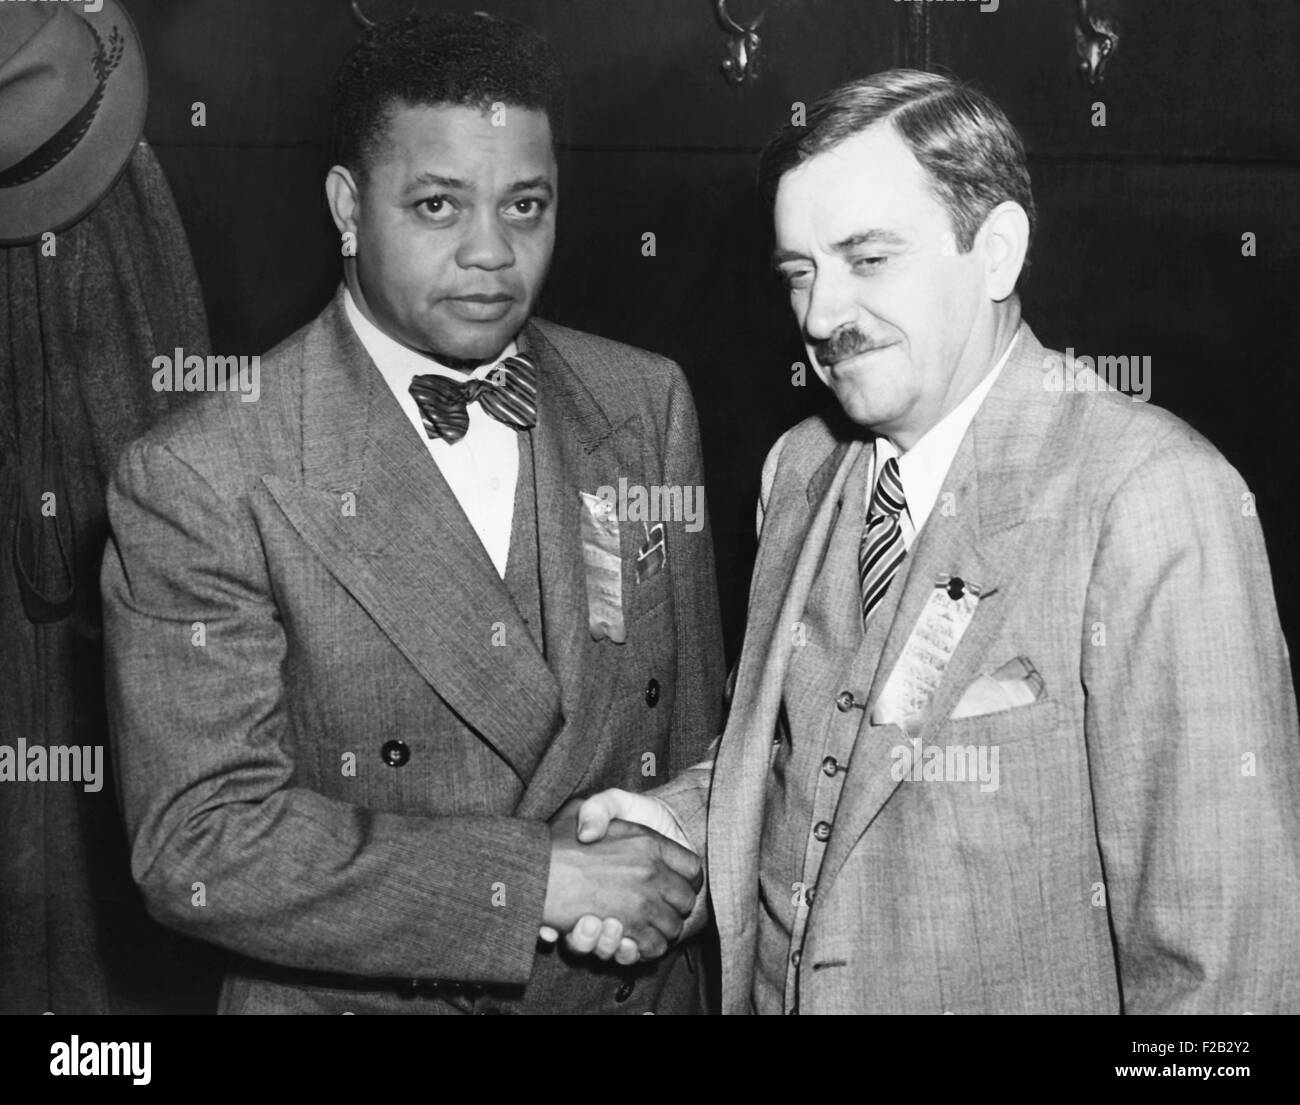 Communist Party of USA 1940 nominees, Earl Browder (right) and James W. Ford. They were nominated by the Communist - Stock Image